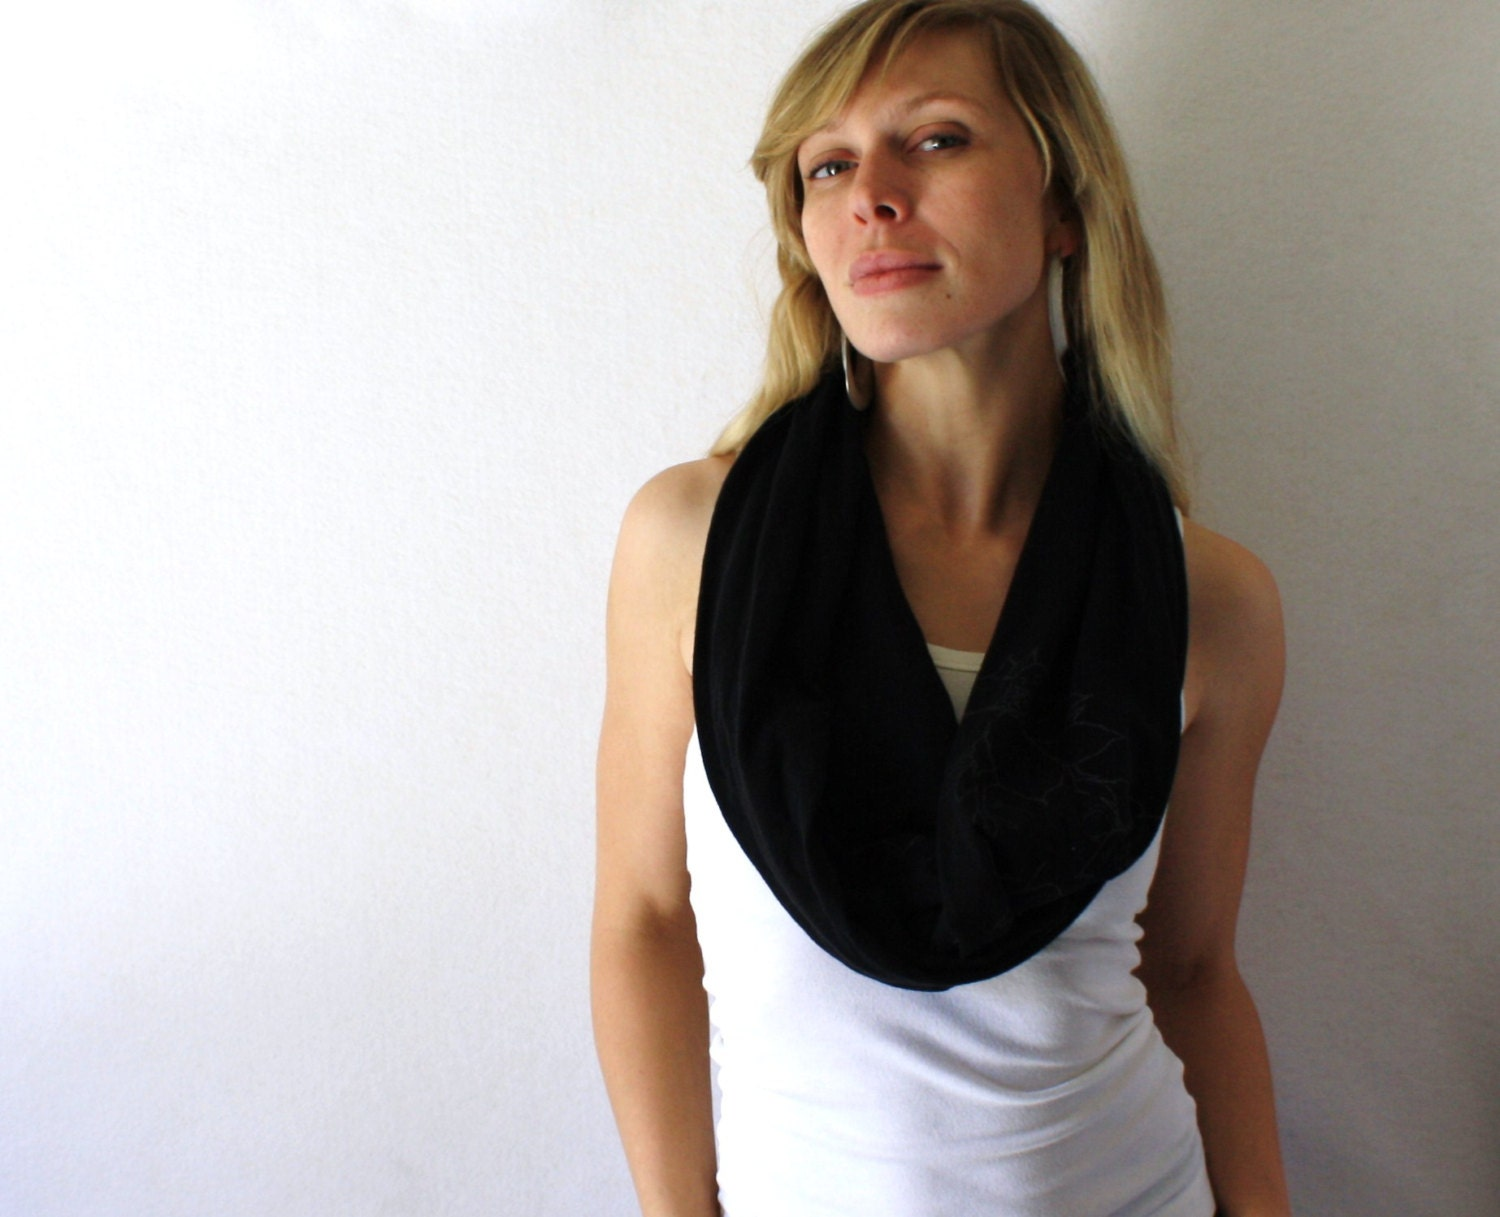 Up-cycled Black Circle Scarf -  Organic Cotton - Black Scarf  - Infinity Scarf - Loop Scarf - Spring Fashion - TheSilkMoon